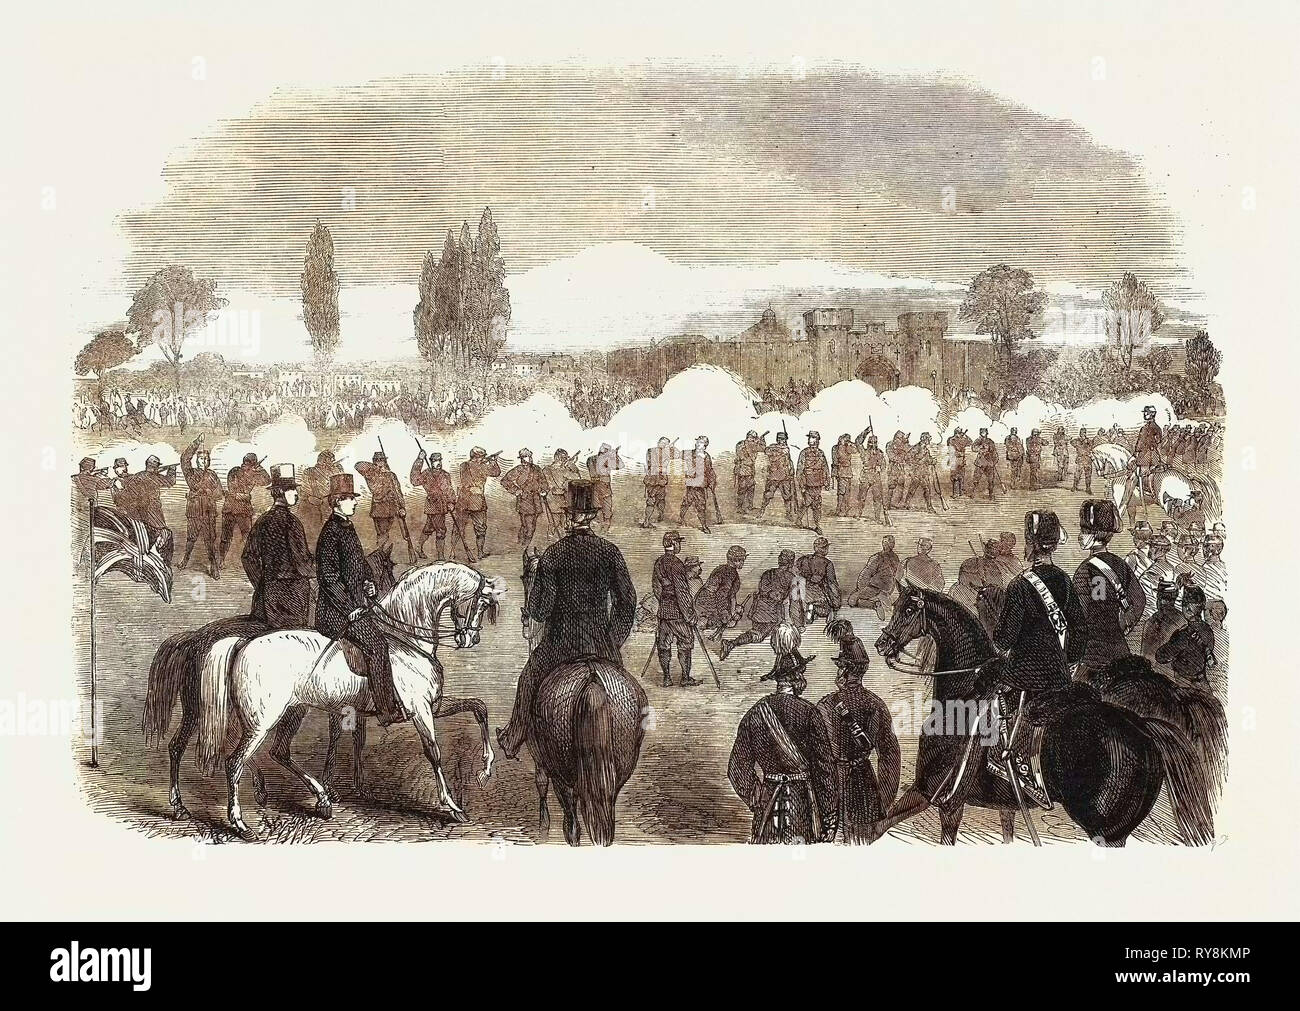 The Volunteer Movement: Review of the Cambridge University Volunteers and the Inns of Court Corps at Cambridge by Colonel M'Murdo in the Presence of the Prince of Wales 1861 - Stock Image